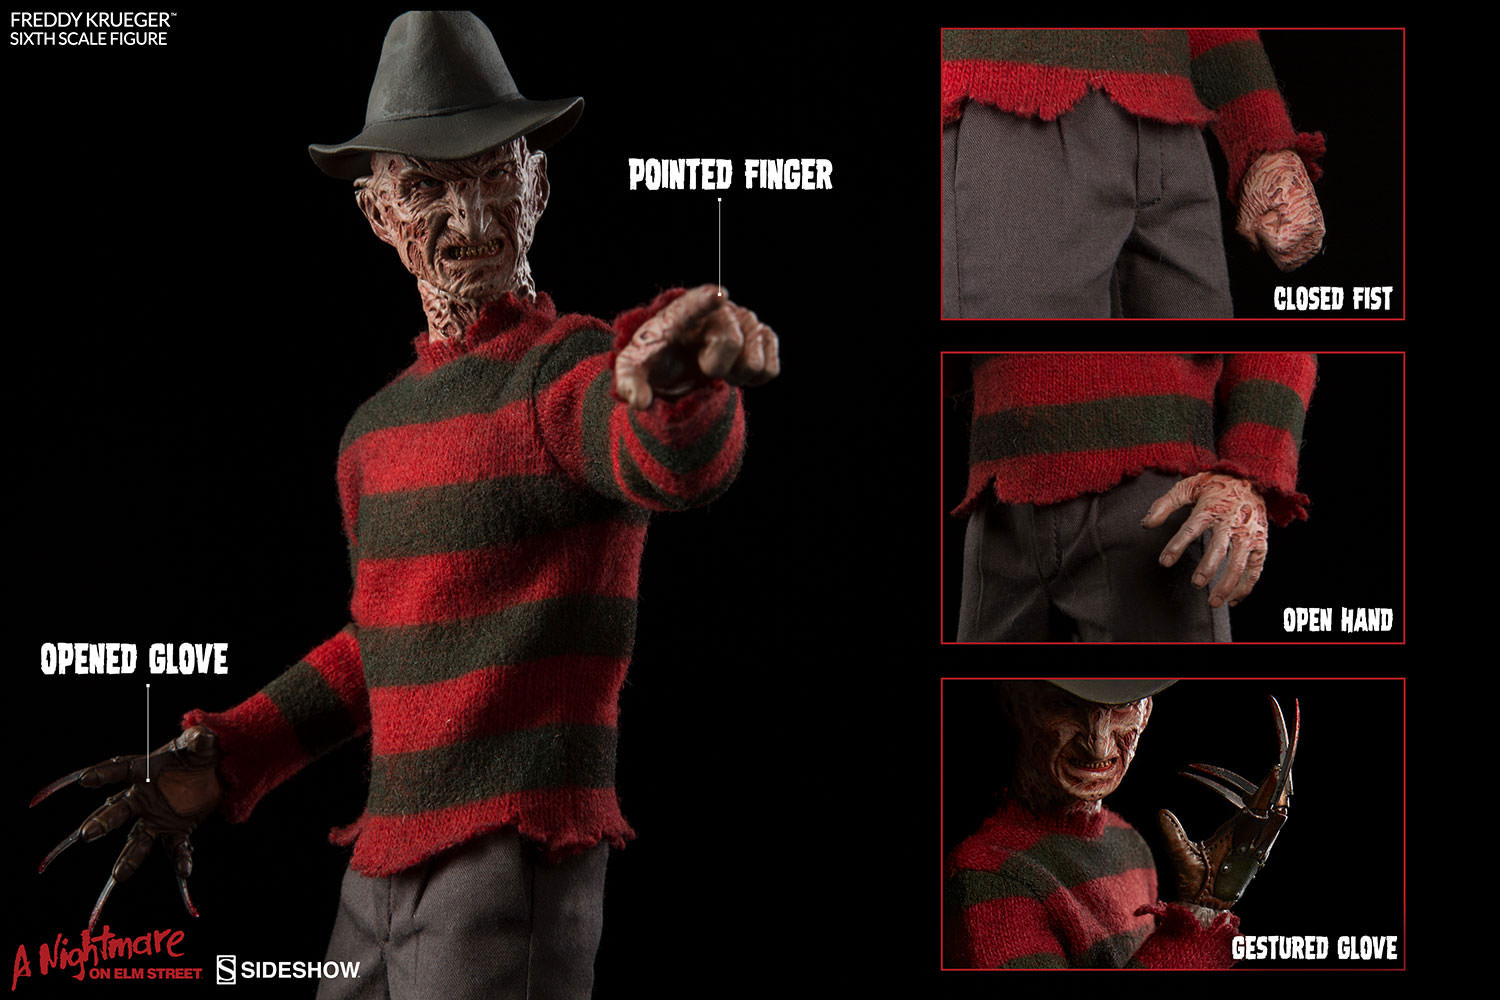 sideshow-nightmare-on-elm-street-freddy-krueger-sixth-scale-fgure-9